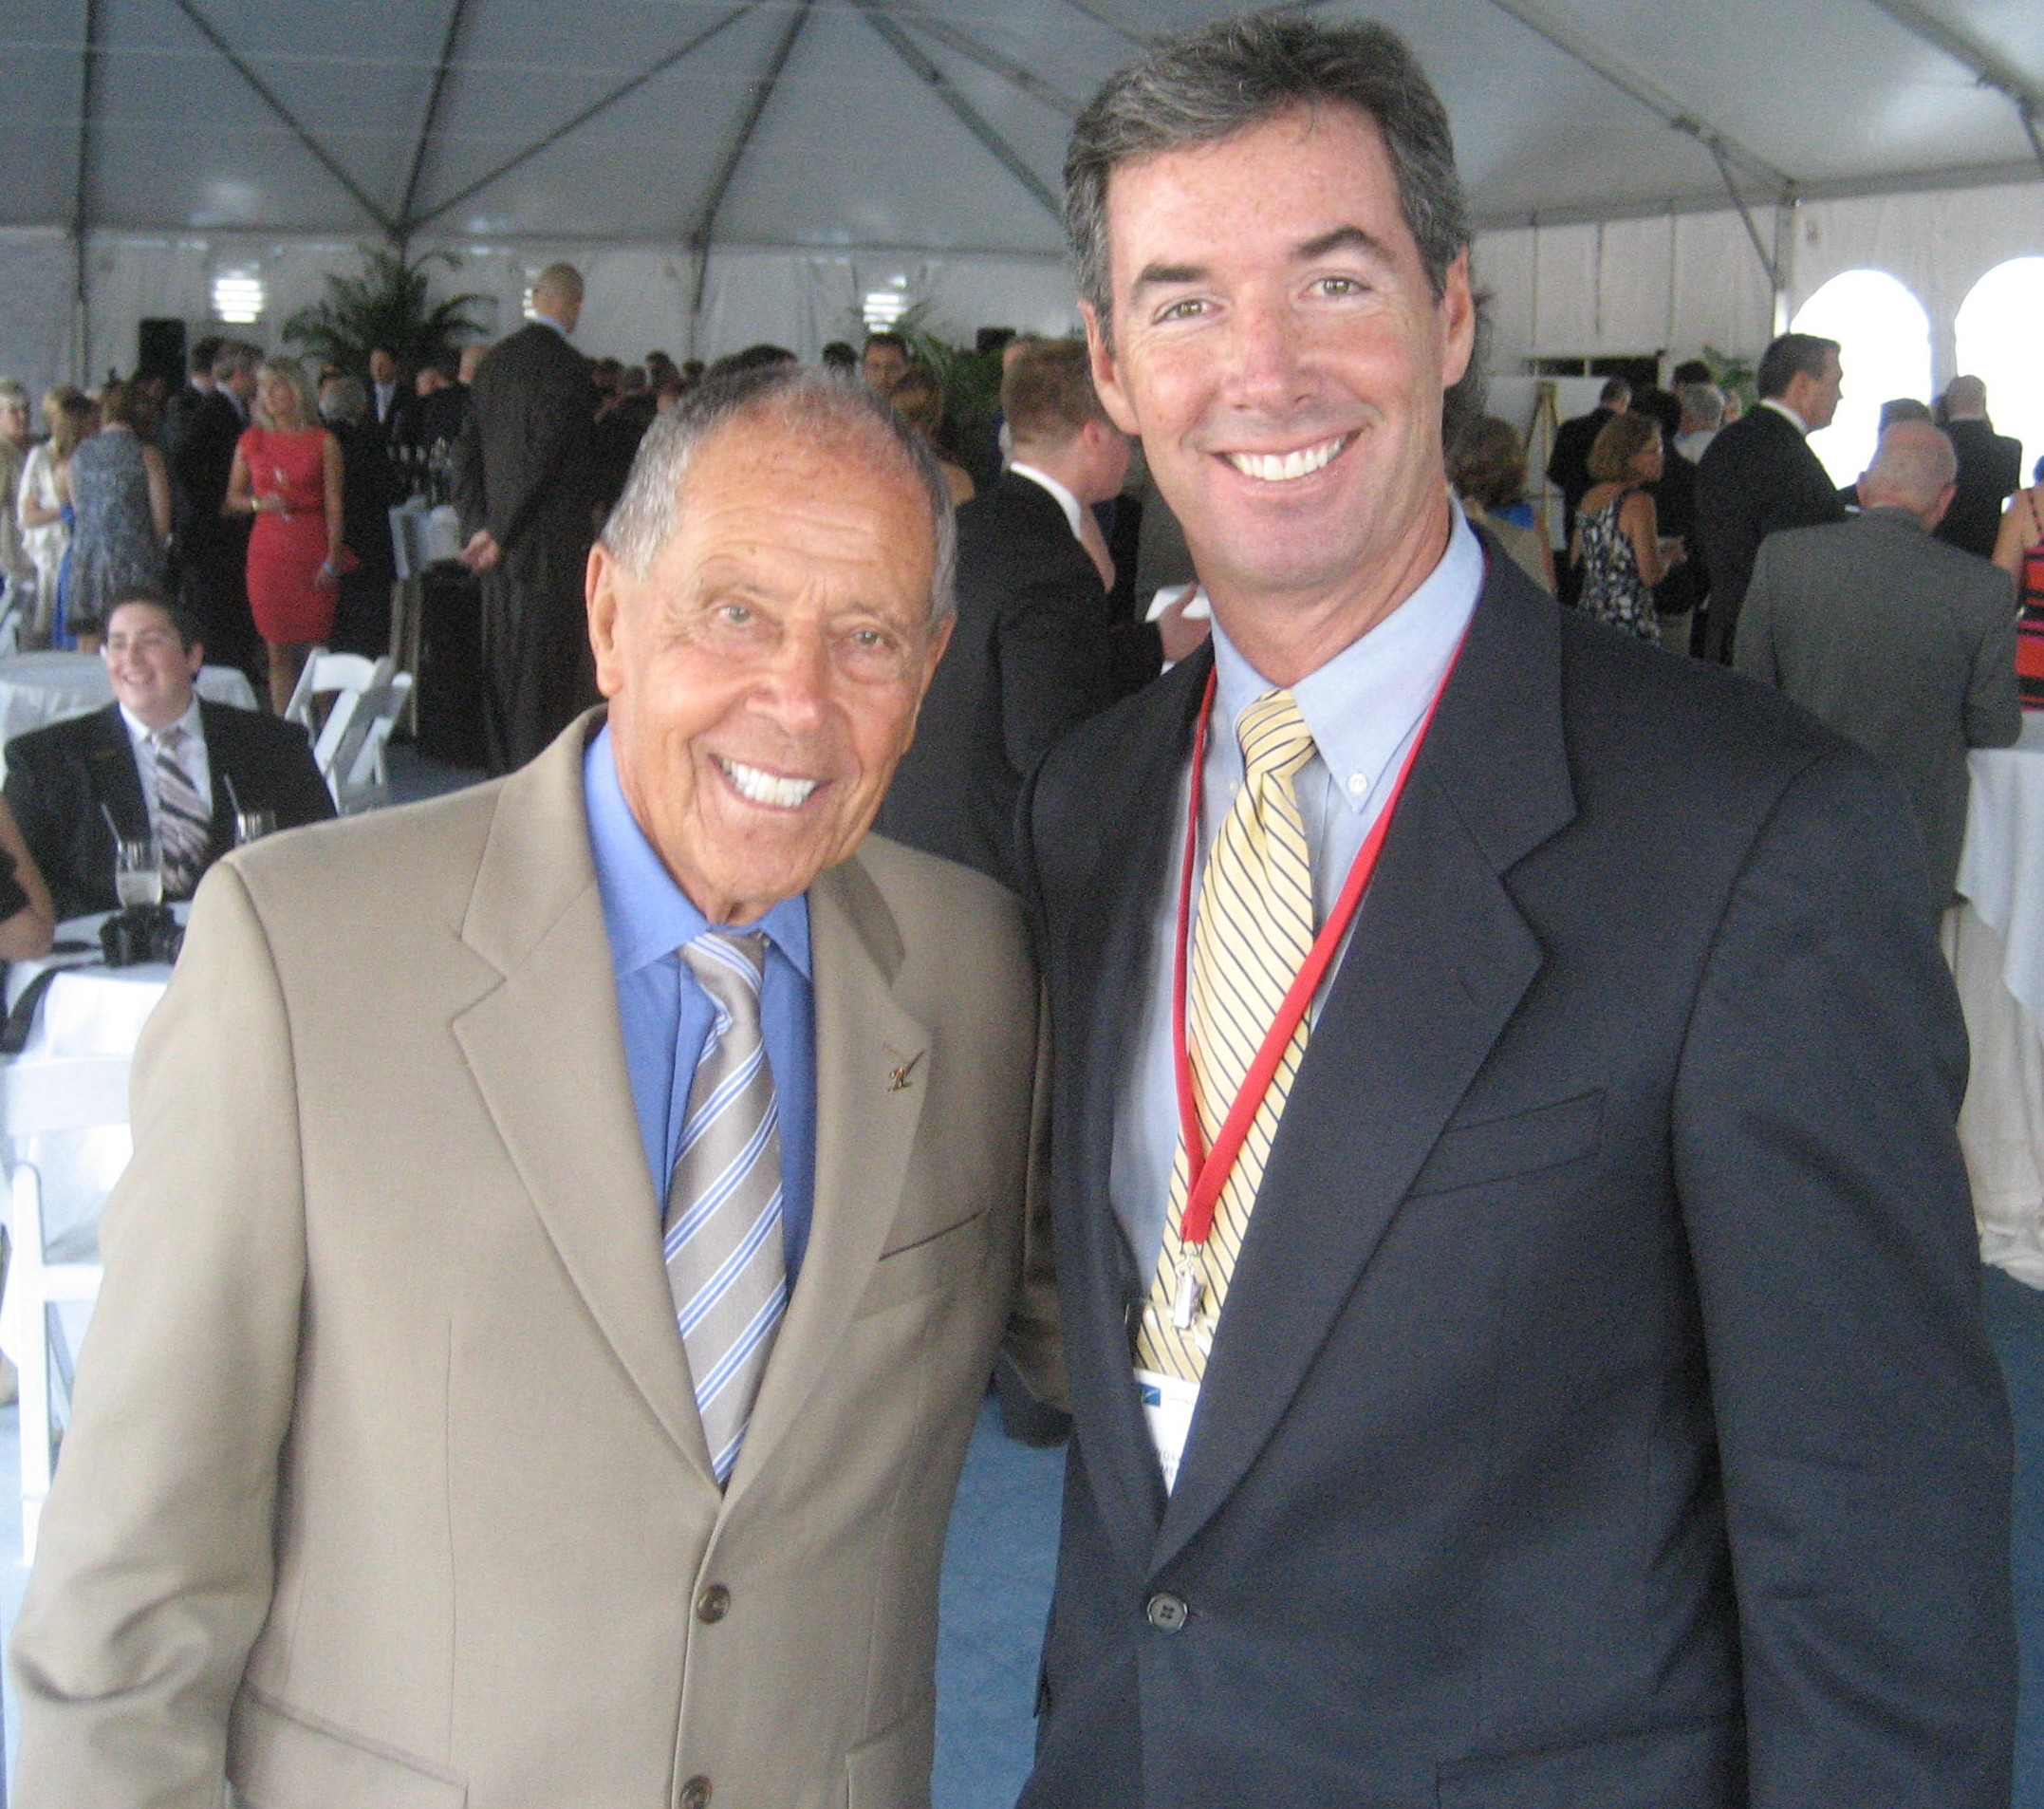 Tennis coaching legend Nick Bollettieri and Ray Collins.